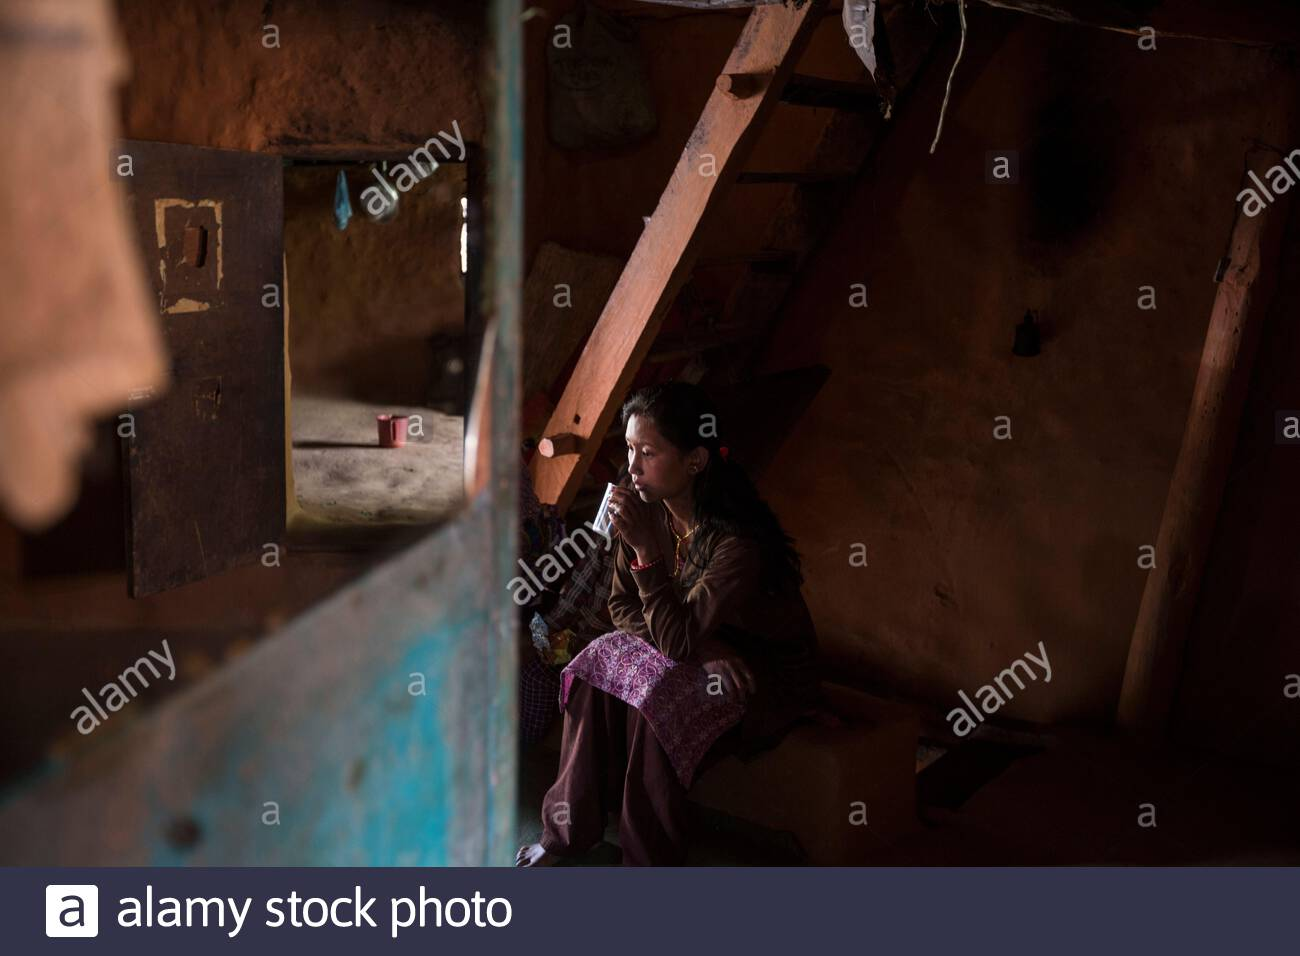 Nepal - Kathmandu - Sunita Lama, 24, drinks a cup of tea while sitting in her house in the outskirts of the capital. Sunita's husband, Sir Kumar Lama, 30, has just come back from Qatar, where he spent one year working as a welder in a factory. Rather than Stock Photo